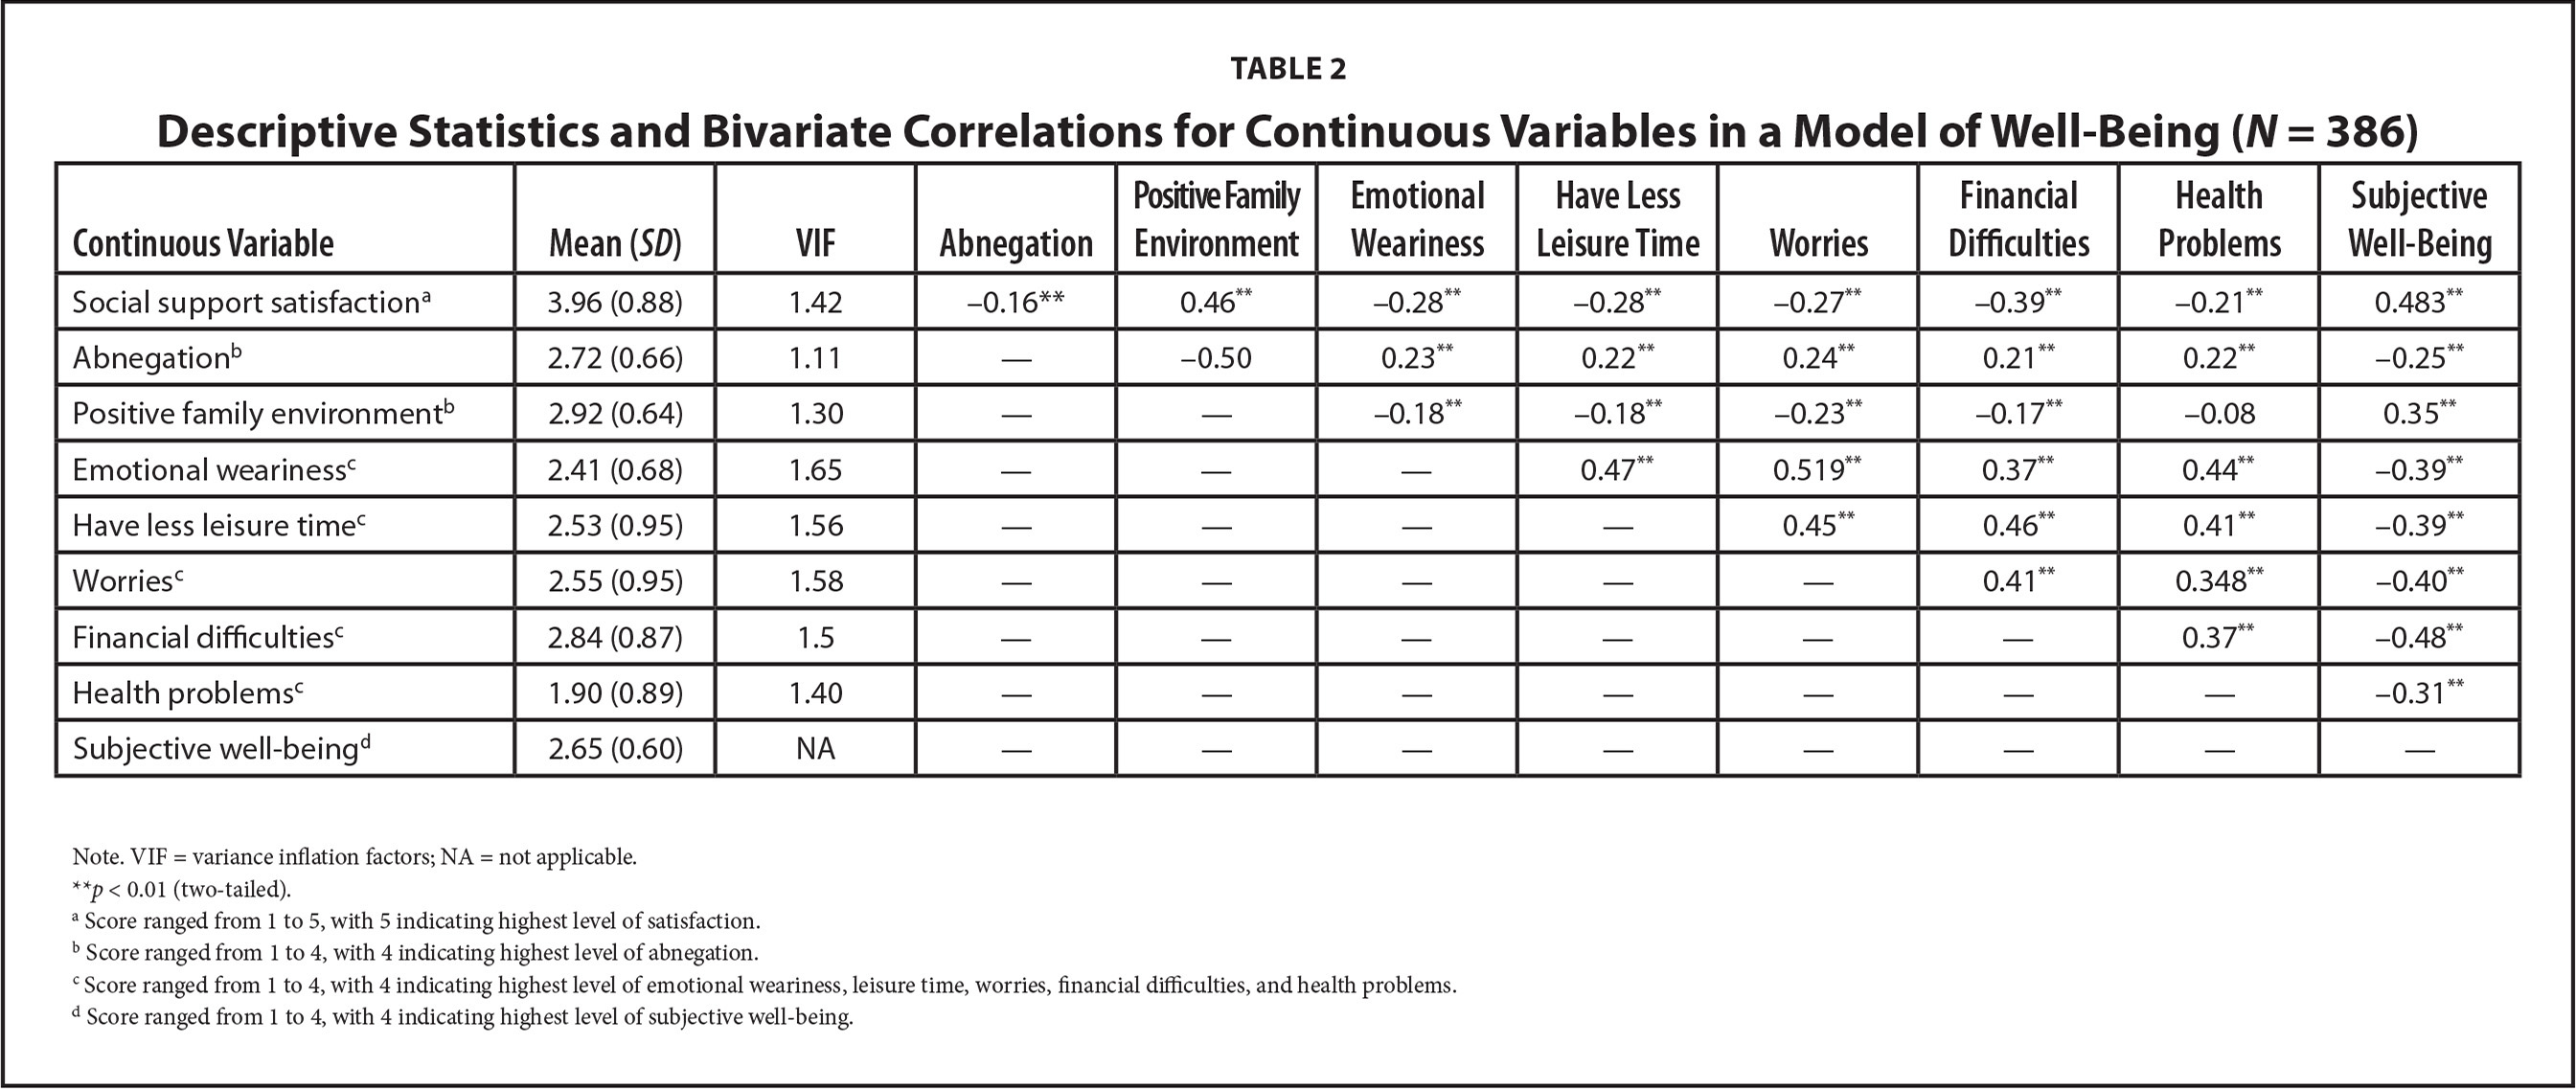 Descriptive Statistics and Bivariate Correlations for Continuous Variables in a Model of Well-Being (N = 386)